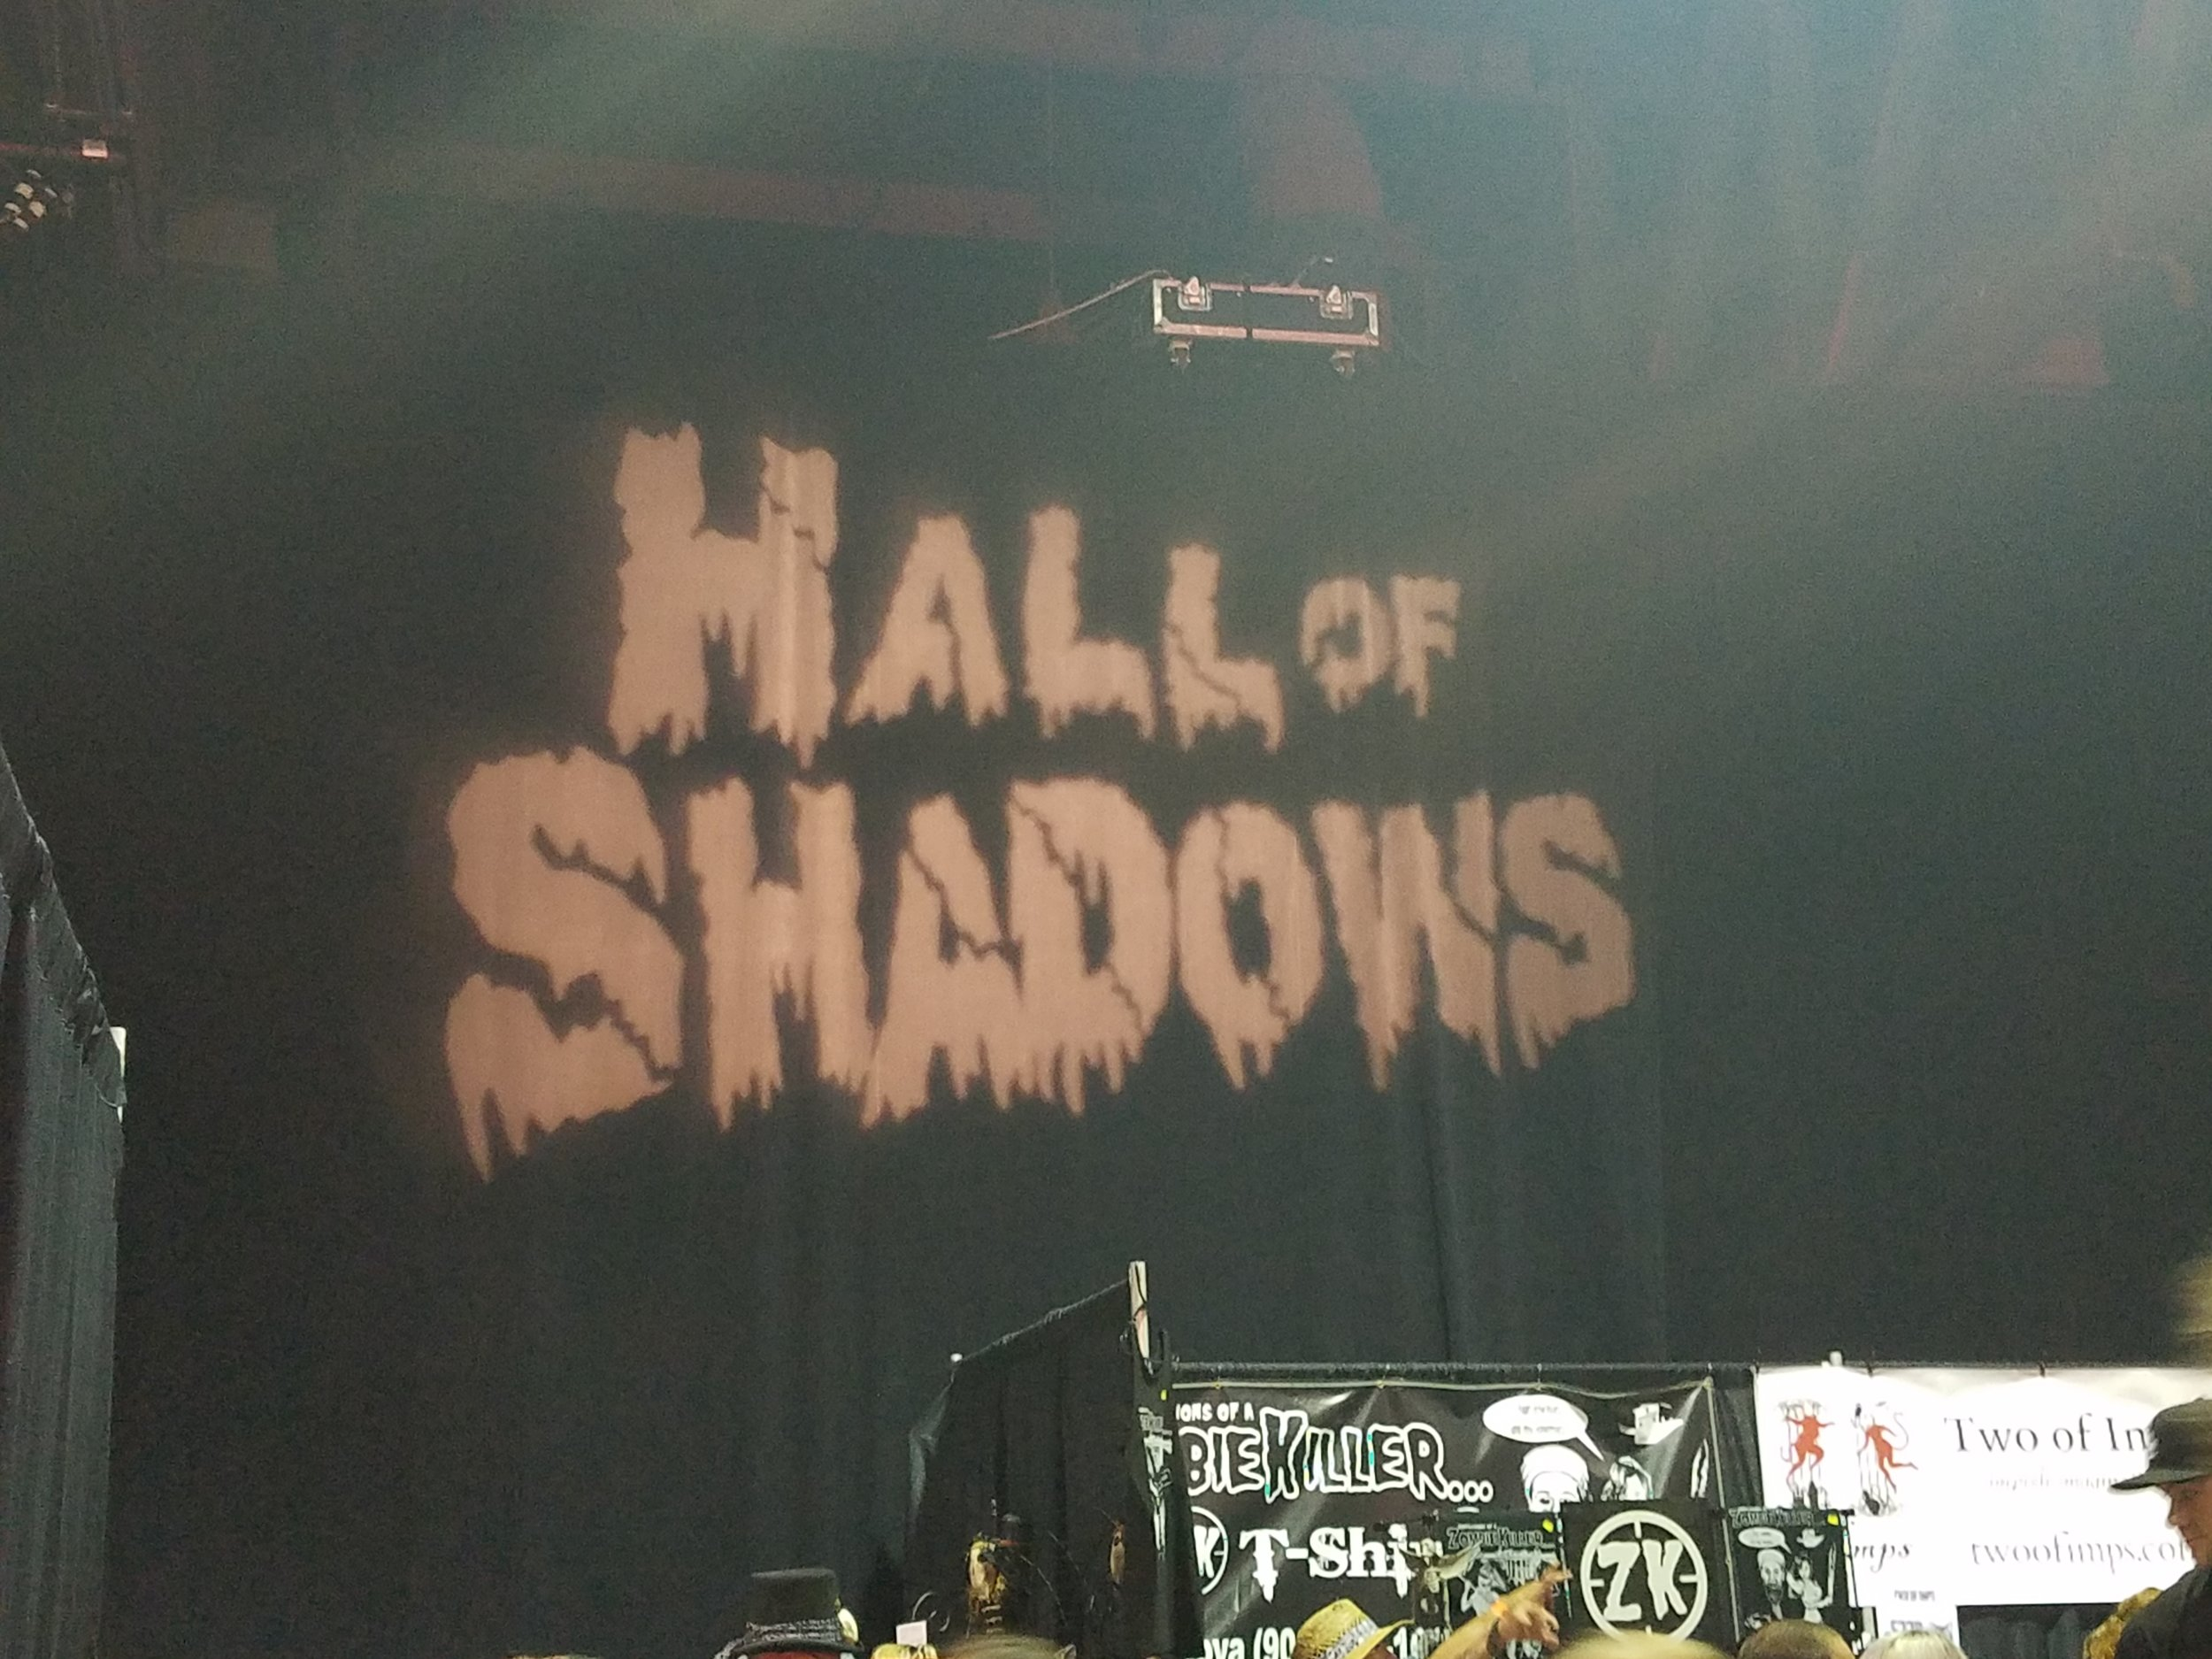 Entrance to the Hall of Shadows